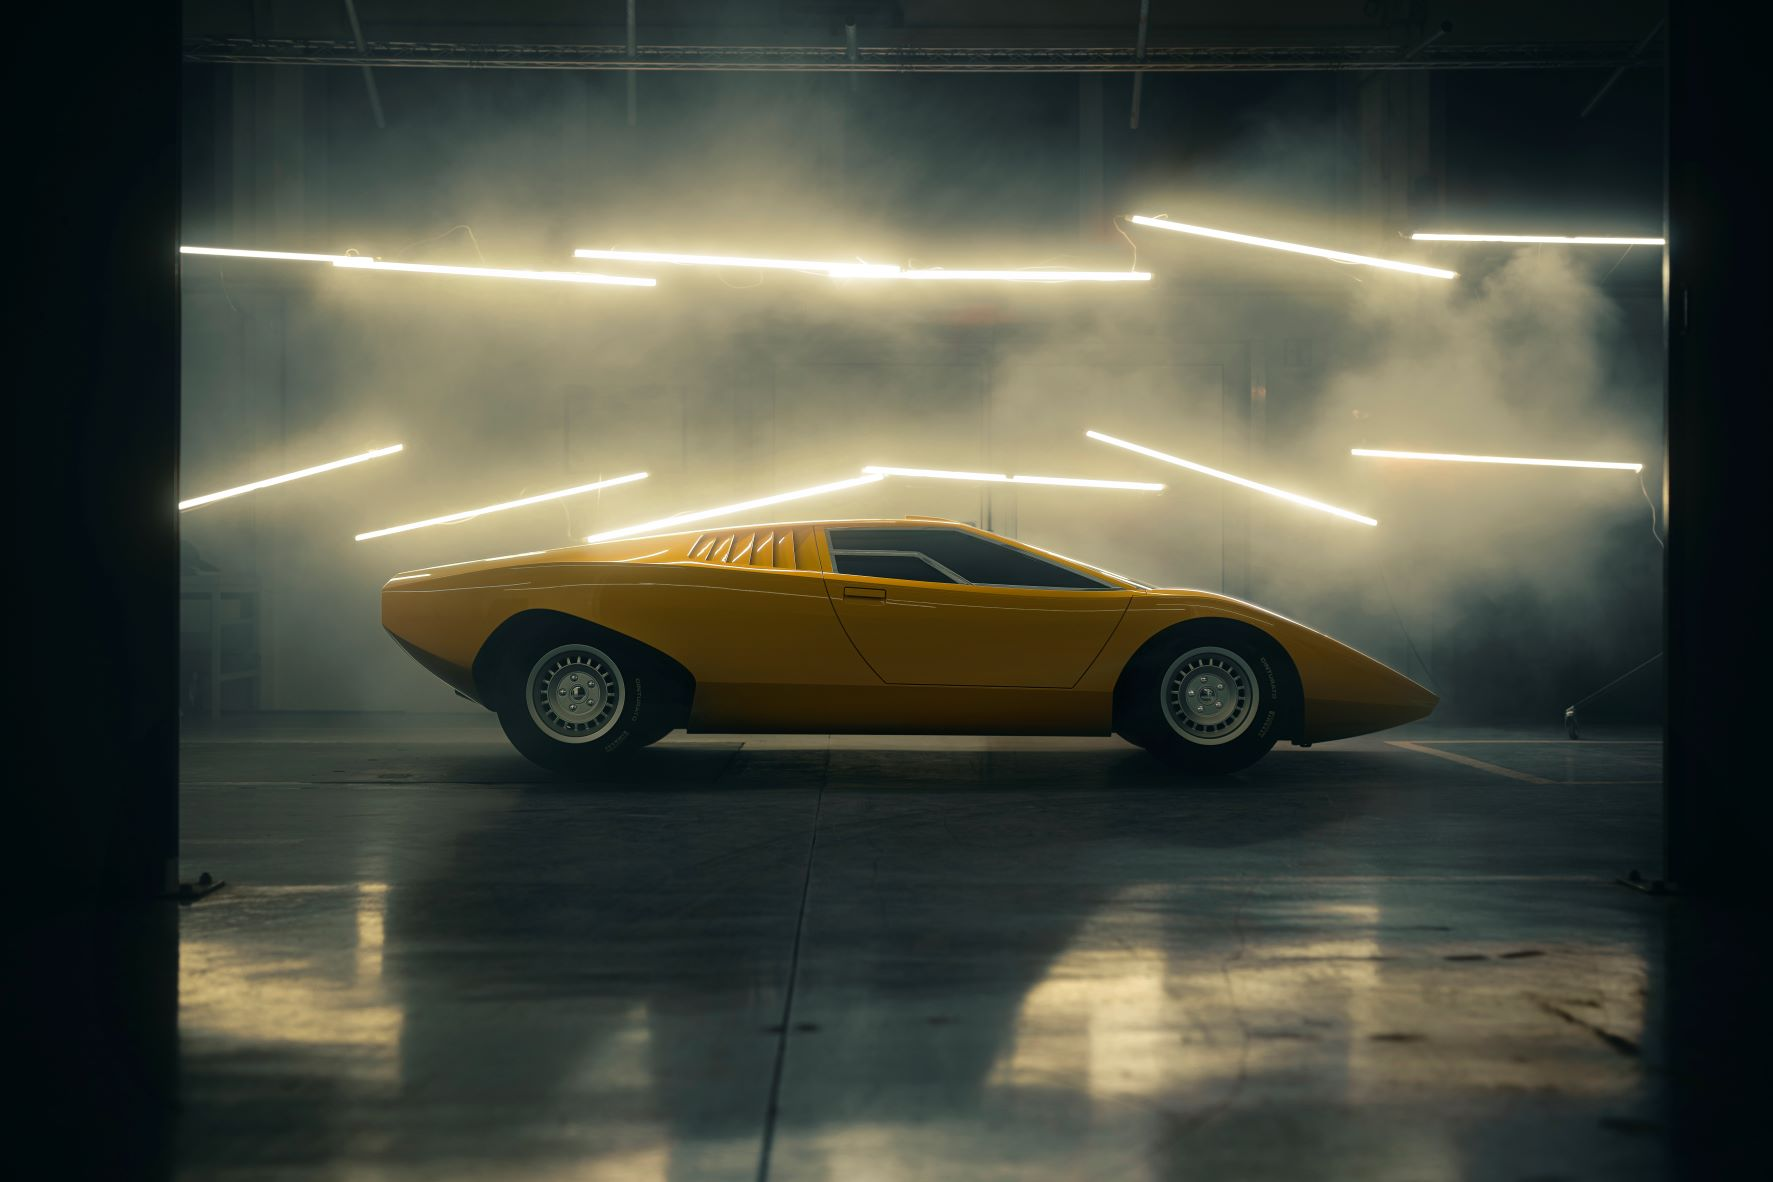 Lamborghini's exact replica of the very first Countach they ever made